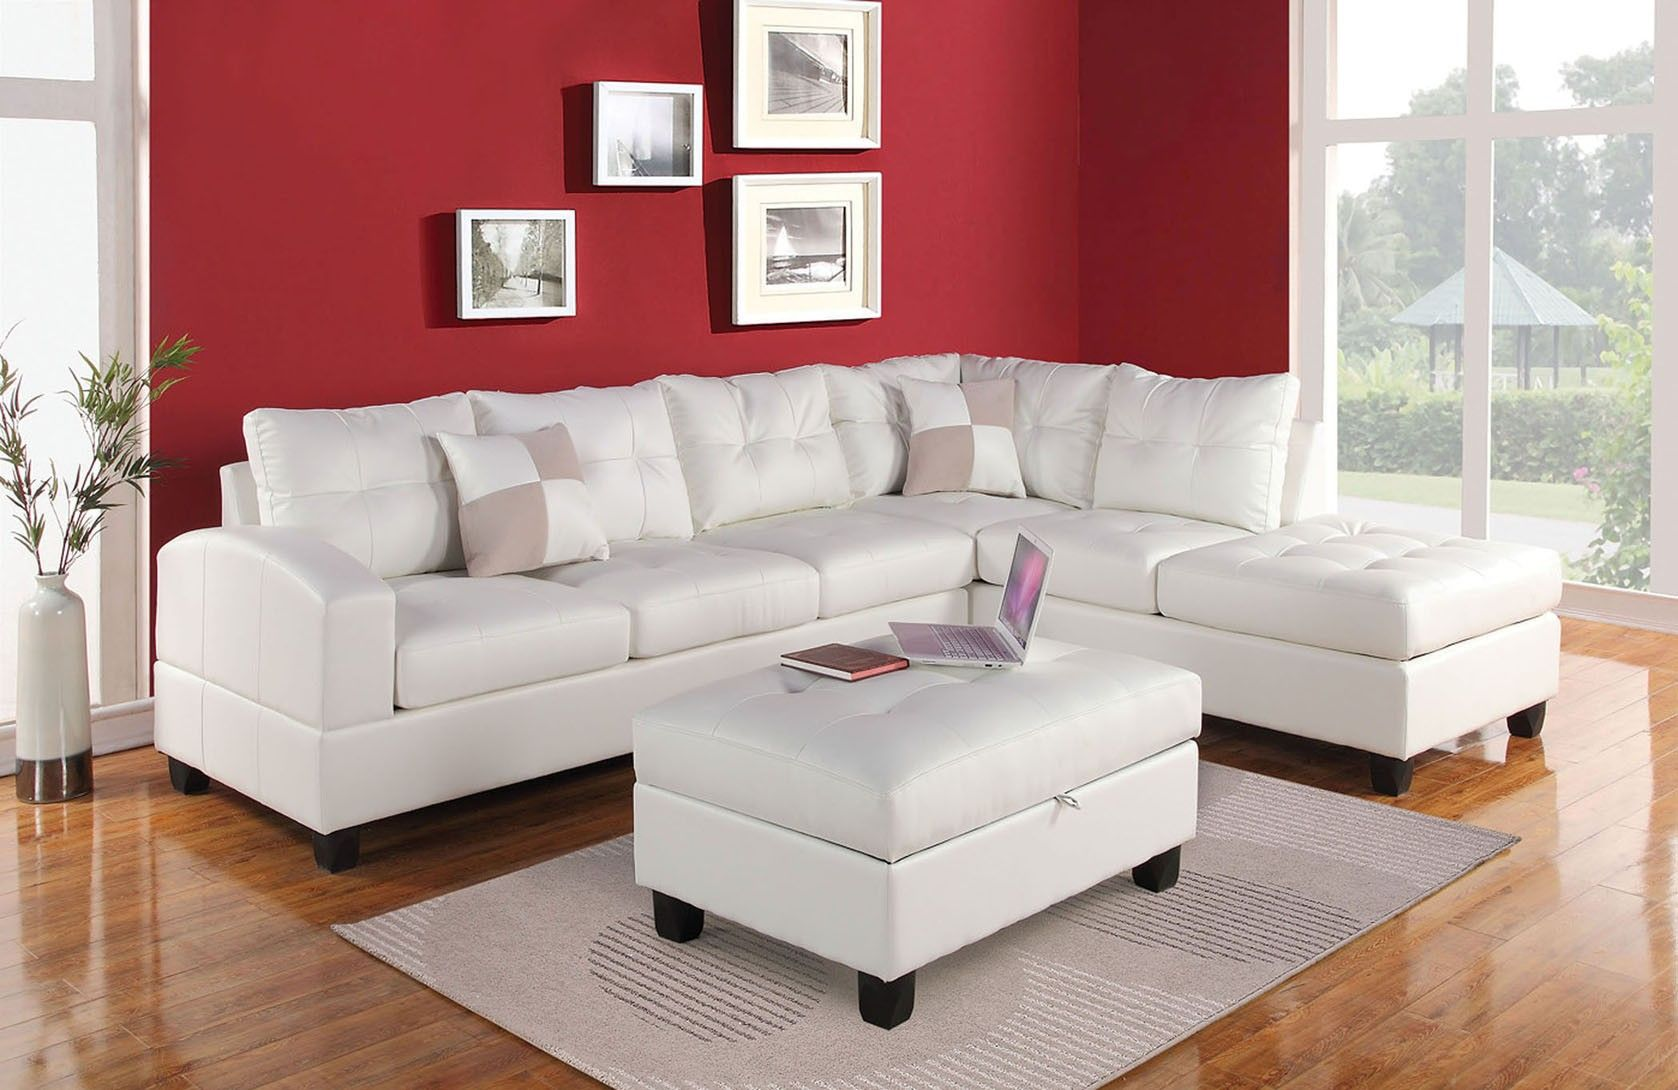 Kiva Collection 51175 White Sectional Sofa | Leather sectional sofas ...